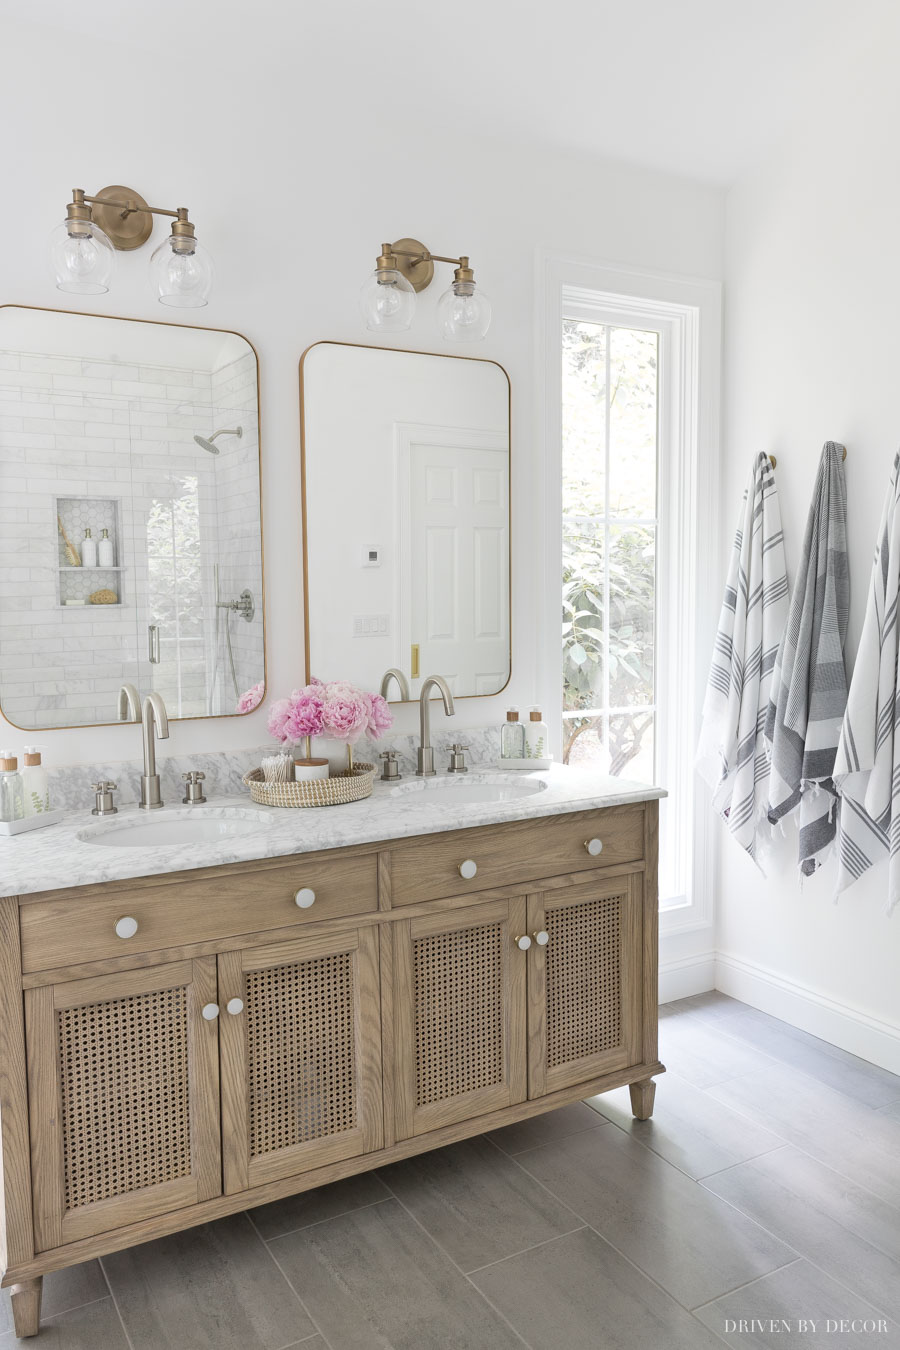 Love the layout of this double vanity between narrow windows and robe hooks on the wall for towels!